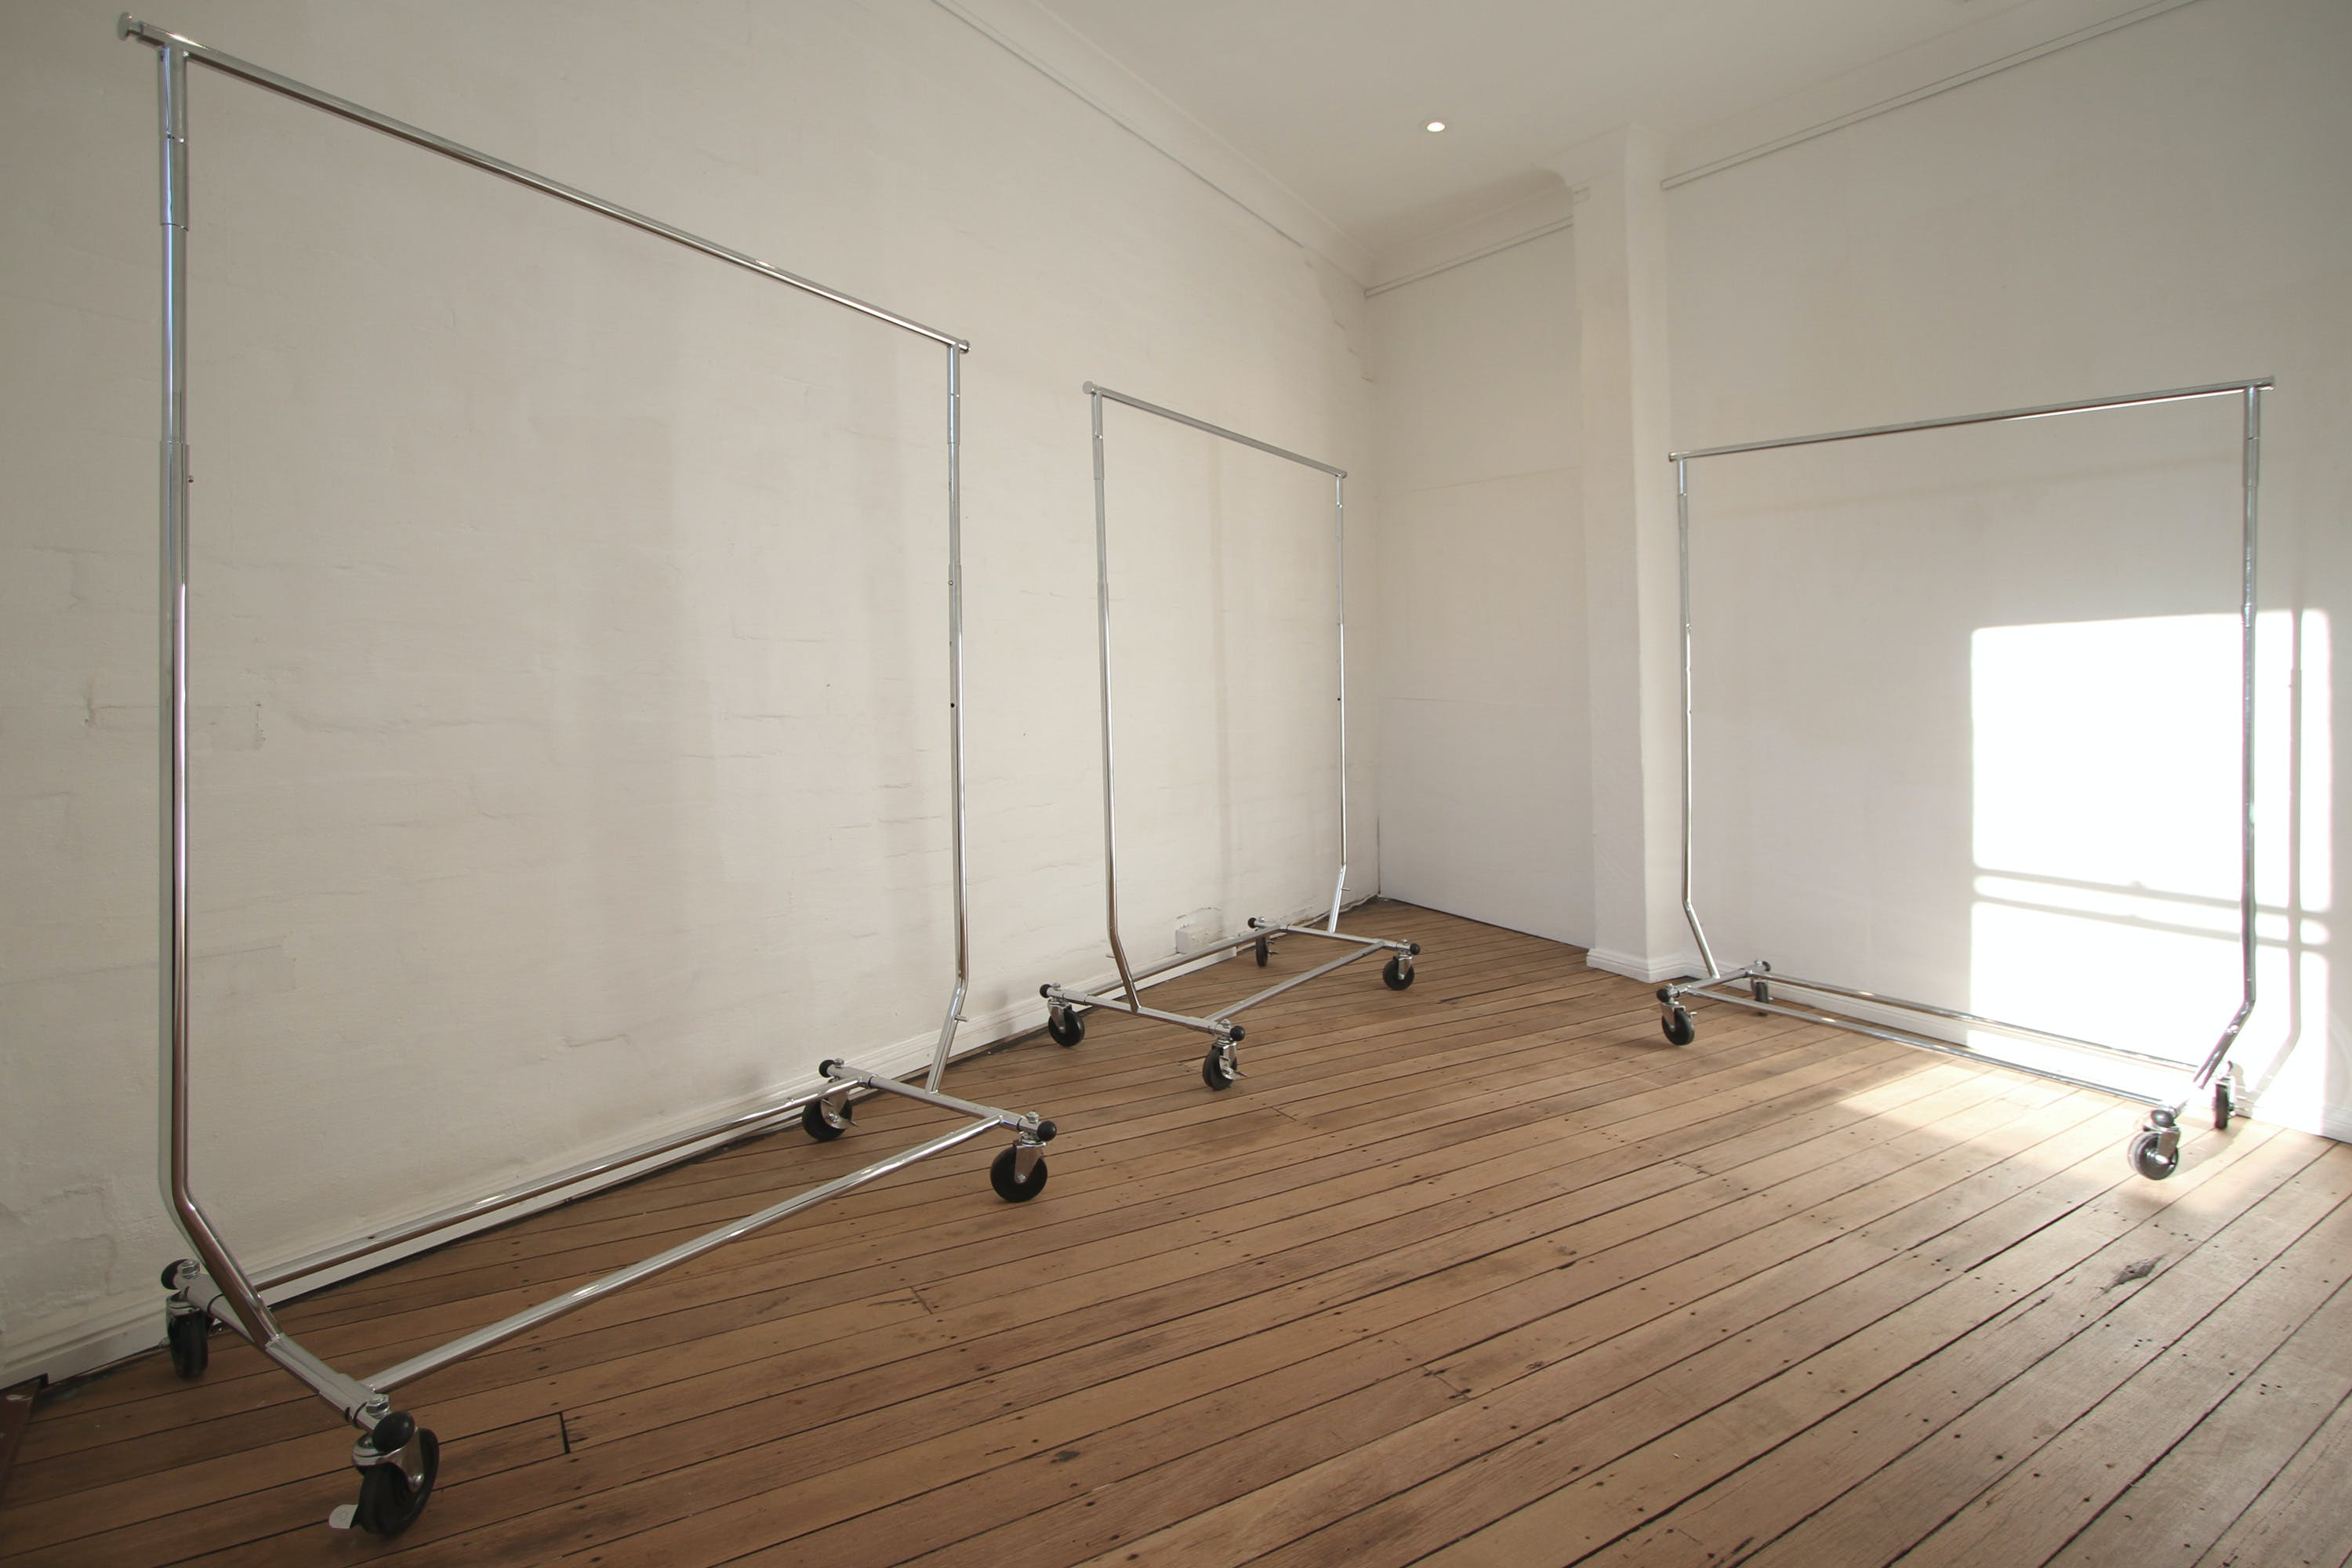 Comber Street Studios (Studio 5), meeting room at Comber Street Studios, image 4